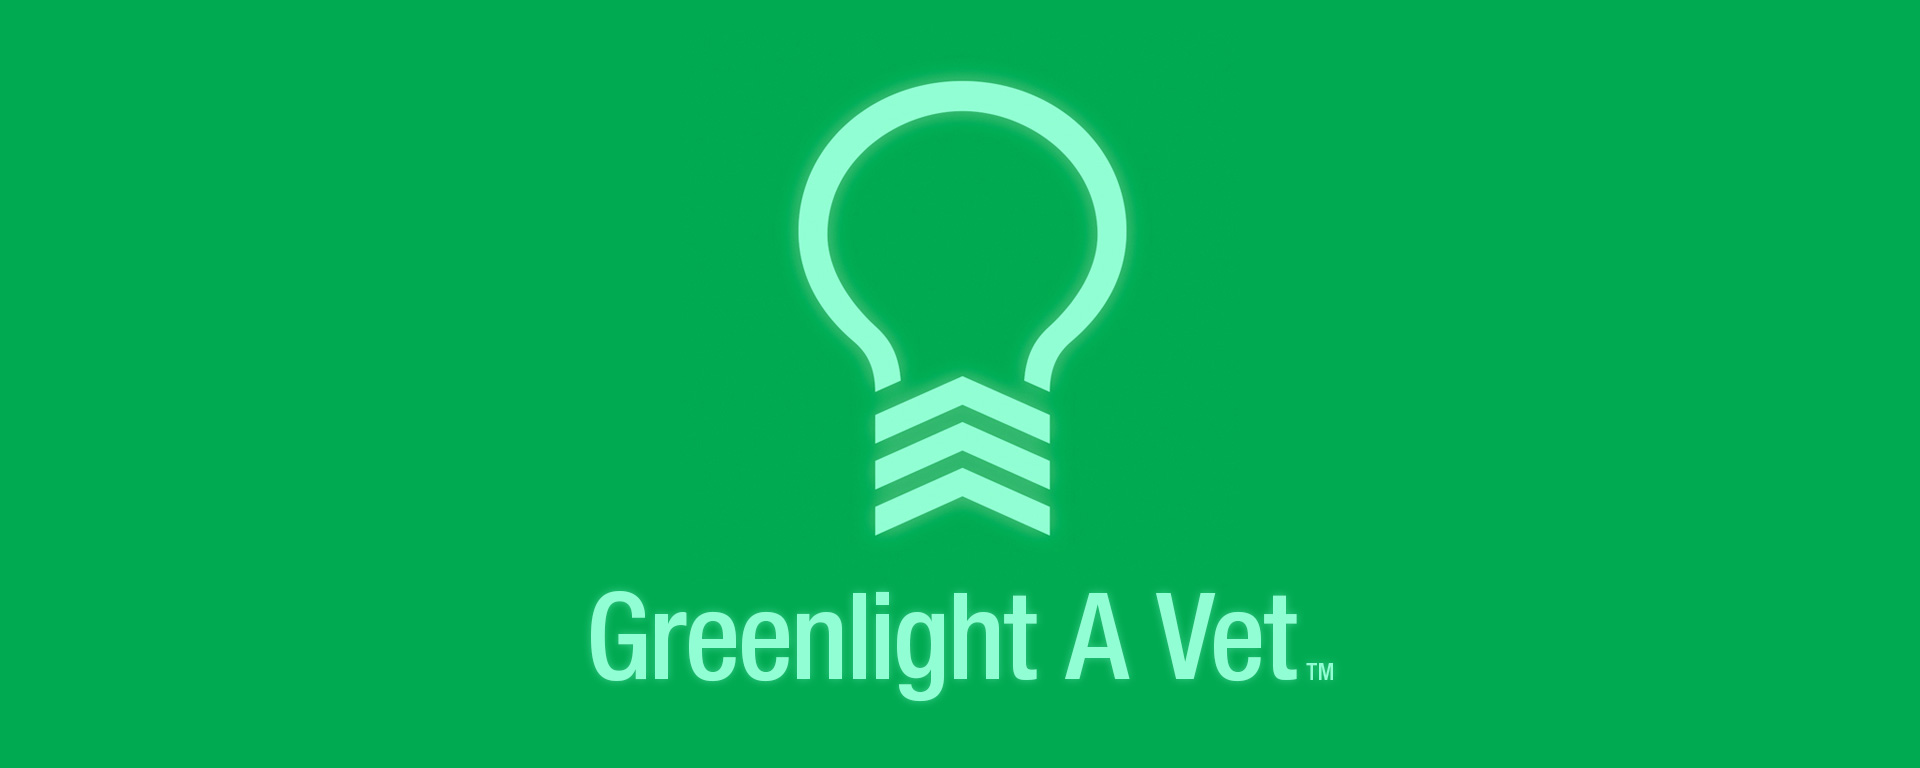 greenlight a vet